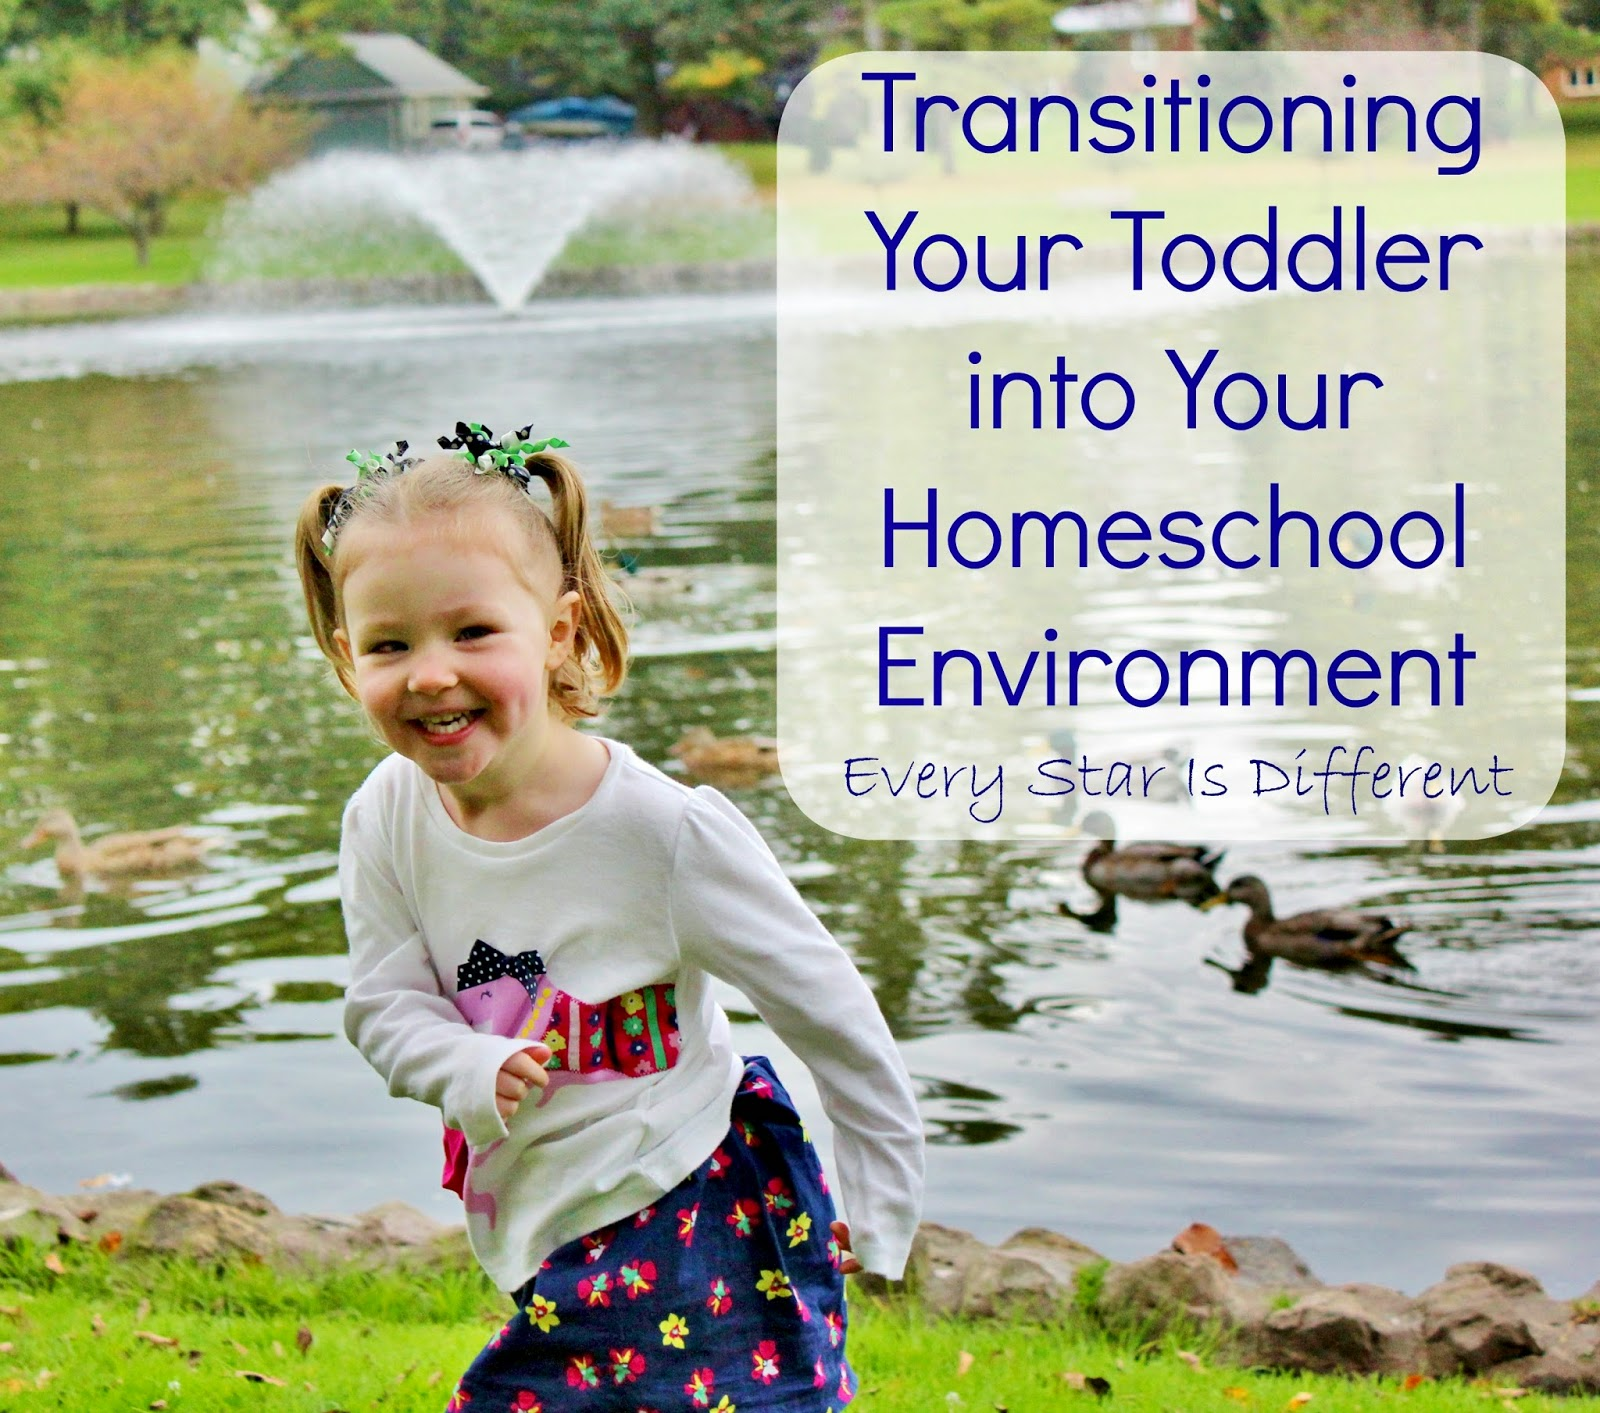 Transitioning Your Toddler Into Your Homeschool Environment